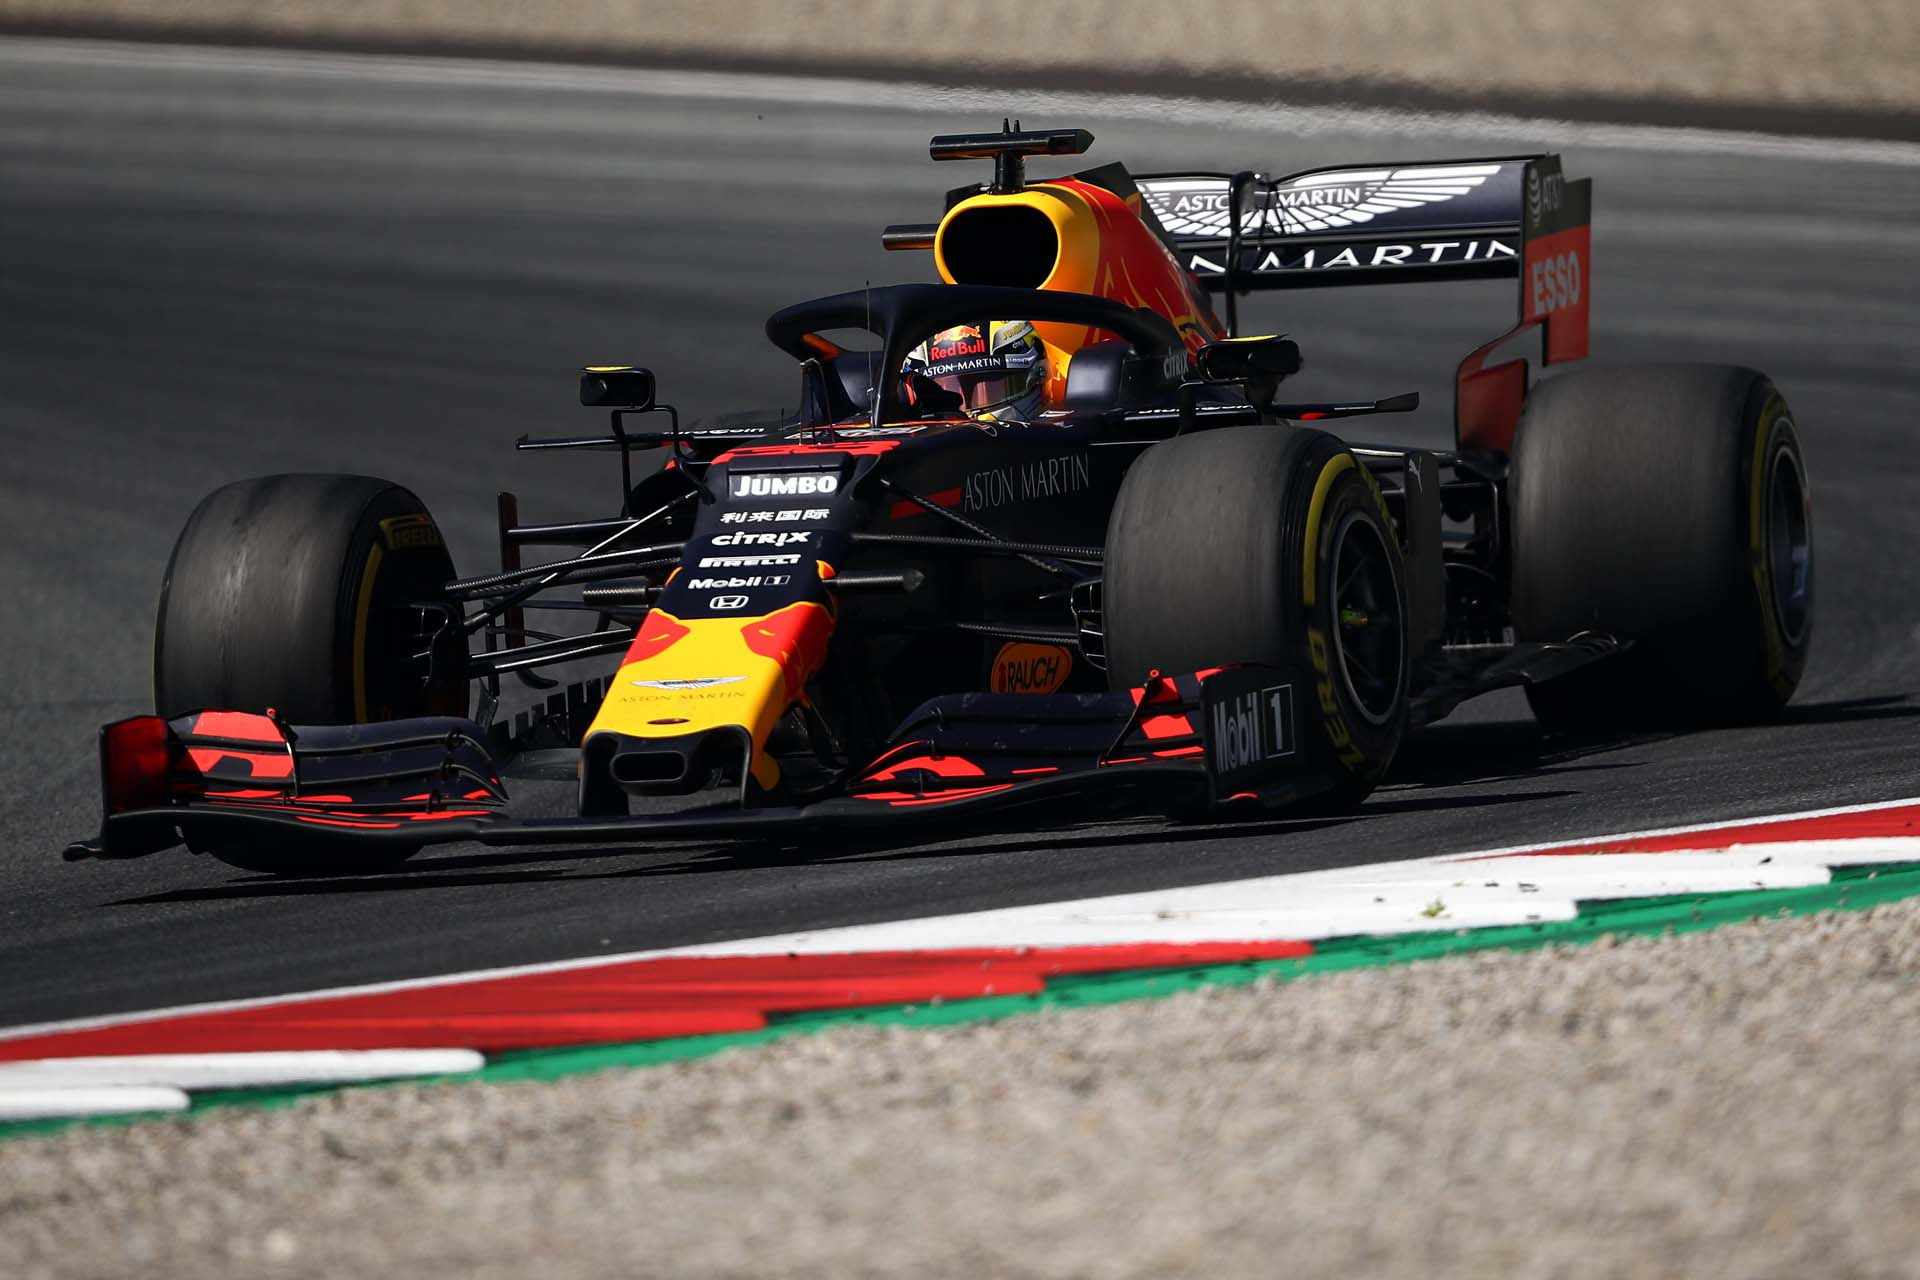 SPIELBERG, AUSTRIA - JUNE 28: Max Verstappen of the Netherlands driving the (33) Aston Martin Red Bull Racing RB15 on track during practice for the F1 Grand Prix of Austria at Red Bull Ring on June 28, 2019 in Spielberg, Austria. (Photo by Bryn Lennon/Getty Images) // Getty Images / Red Bull Content Pool  // AP-1ZSNE98M91W11 // Usage for editorial use only // Please go to www.redbullcontentpool.com for further information. //